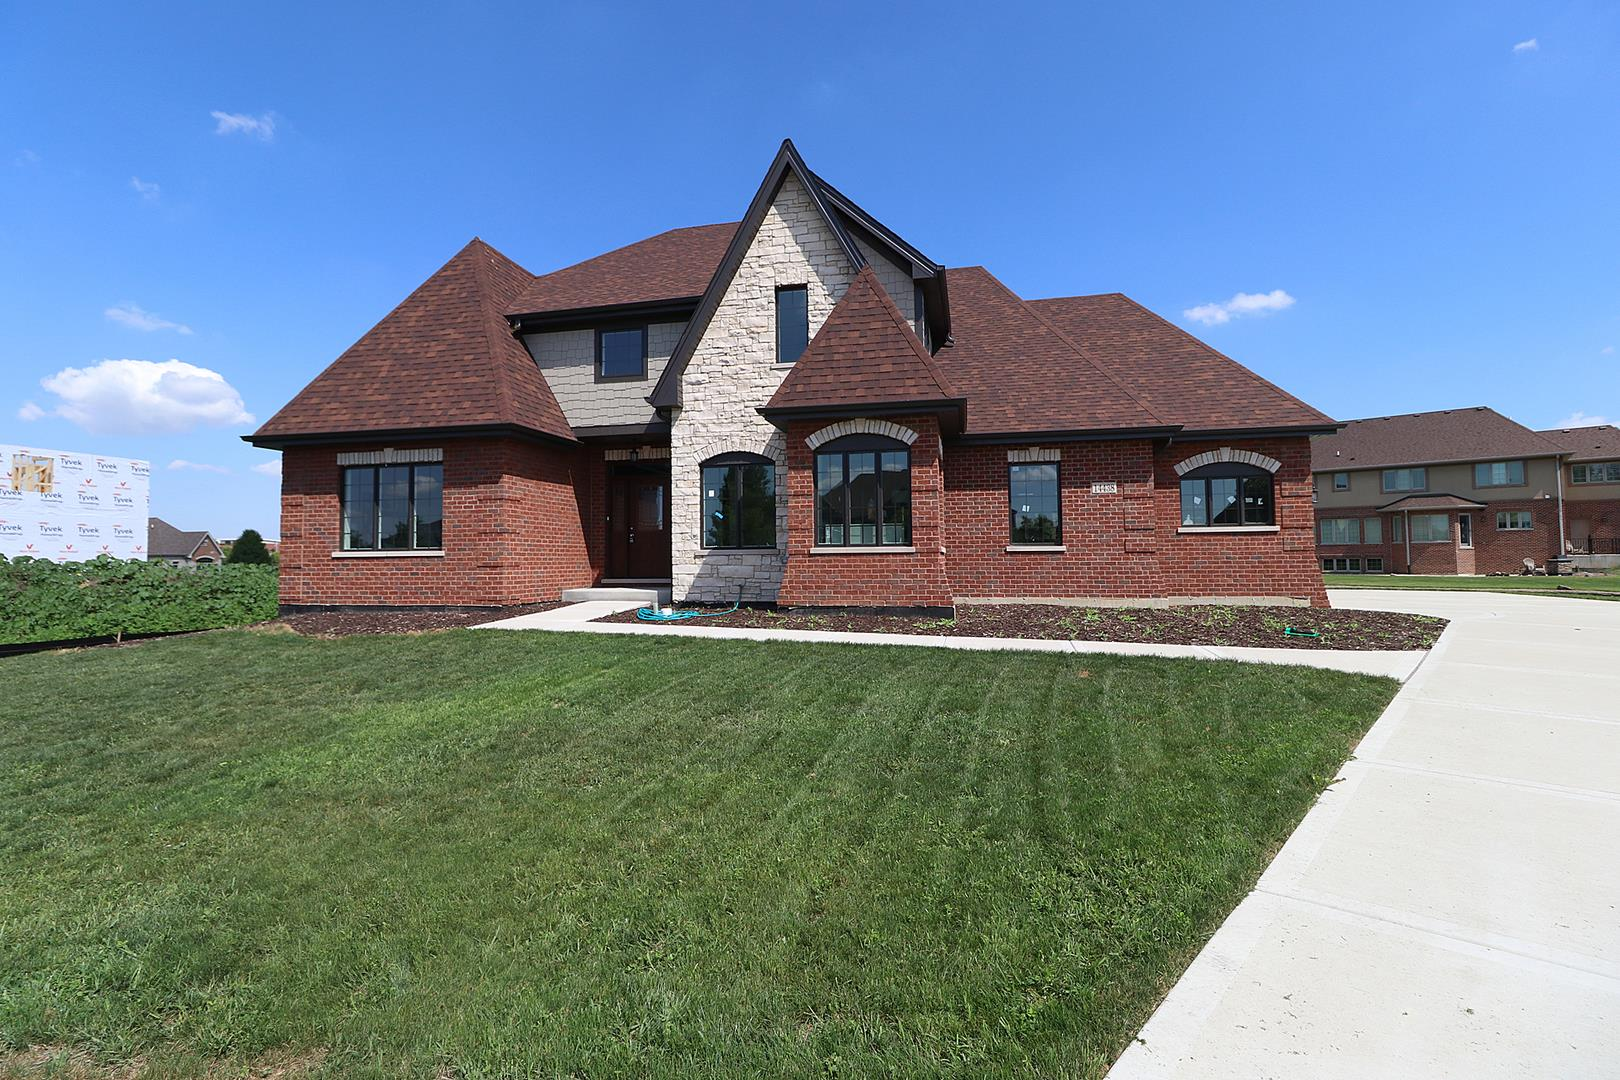 14438 W Anne Court, Homer Glen, IL 60491 - #: 10787175